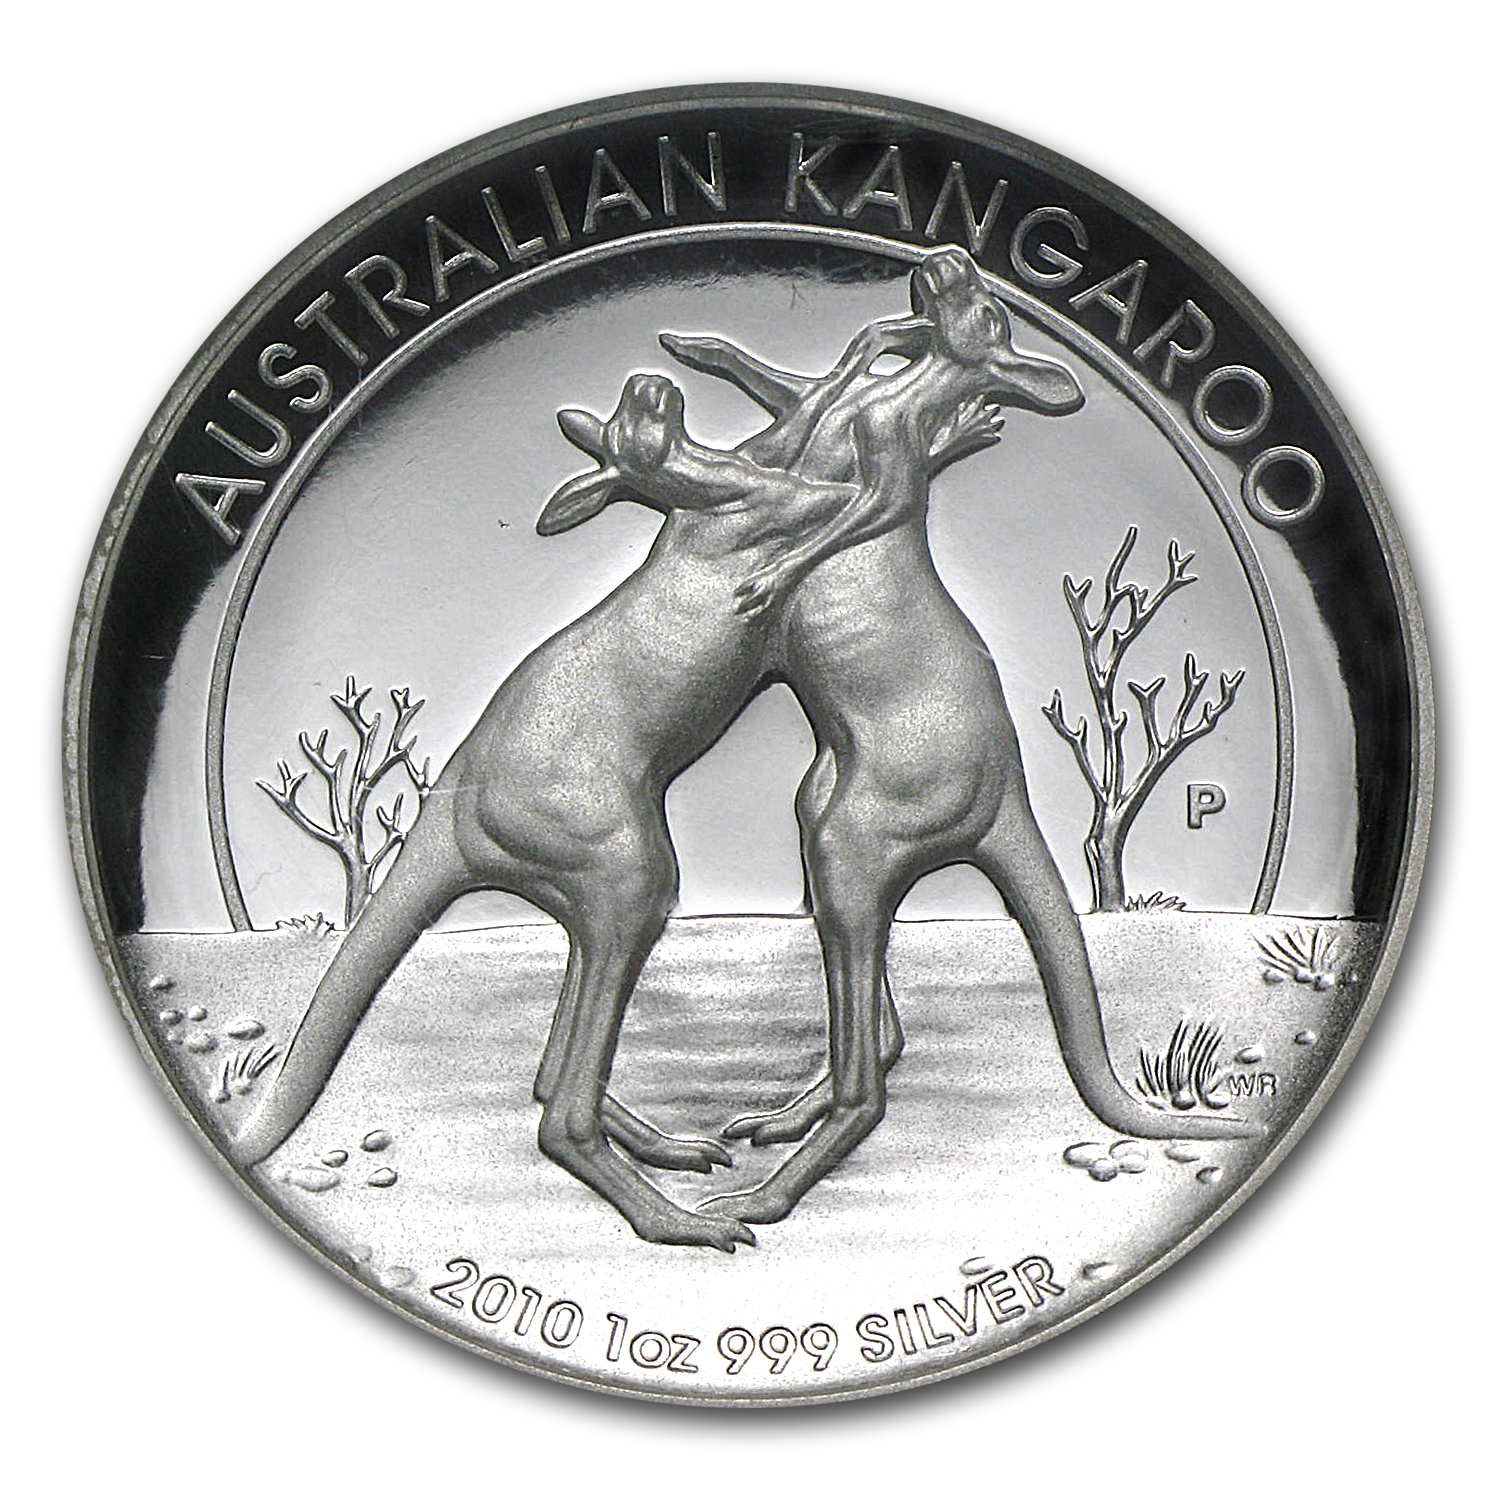 2010 1 oz Silver High Relief Proof Kangaroo PF-70 UCAM NGC